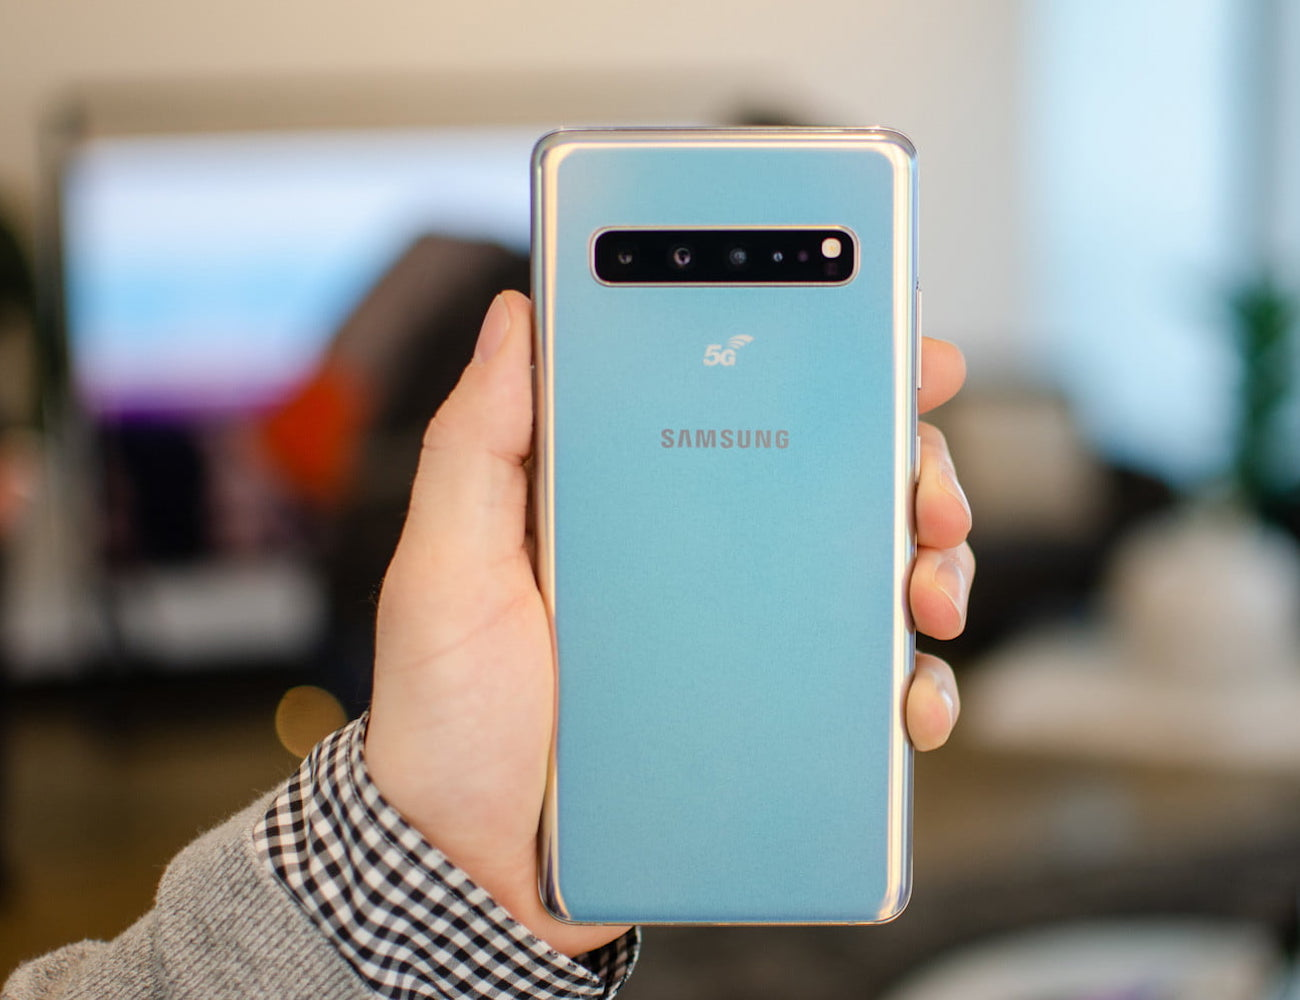 Samsung Galaxy S10 5G Android Smartphone